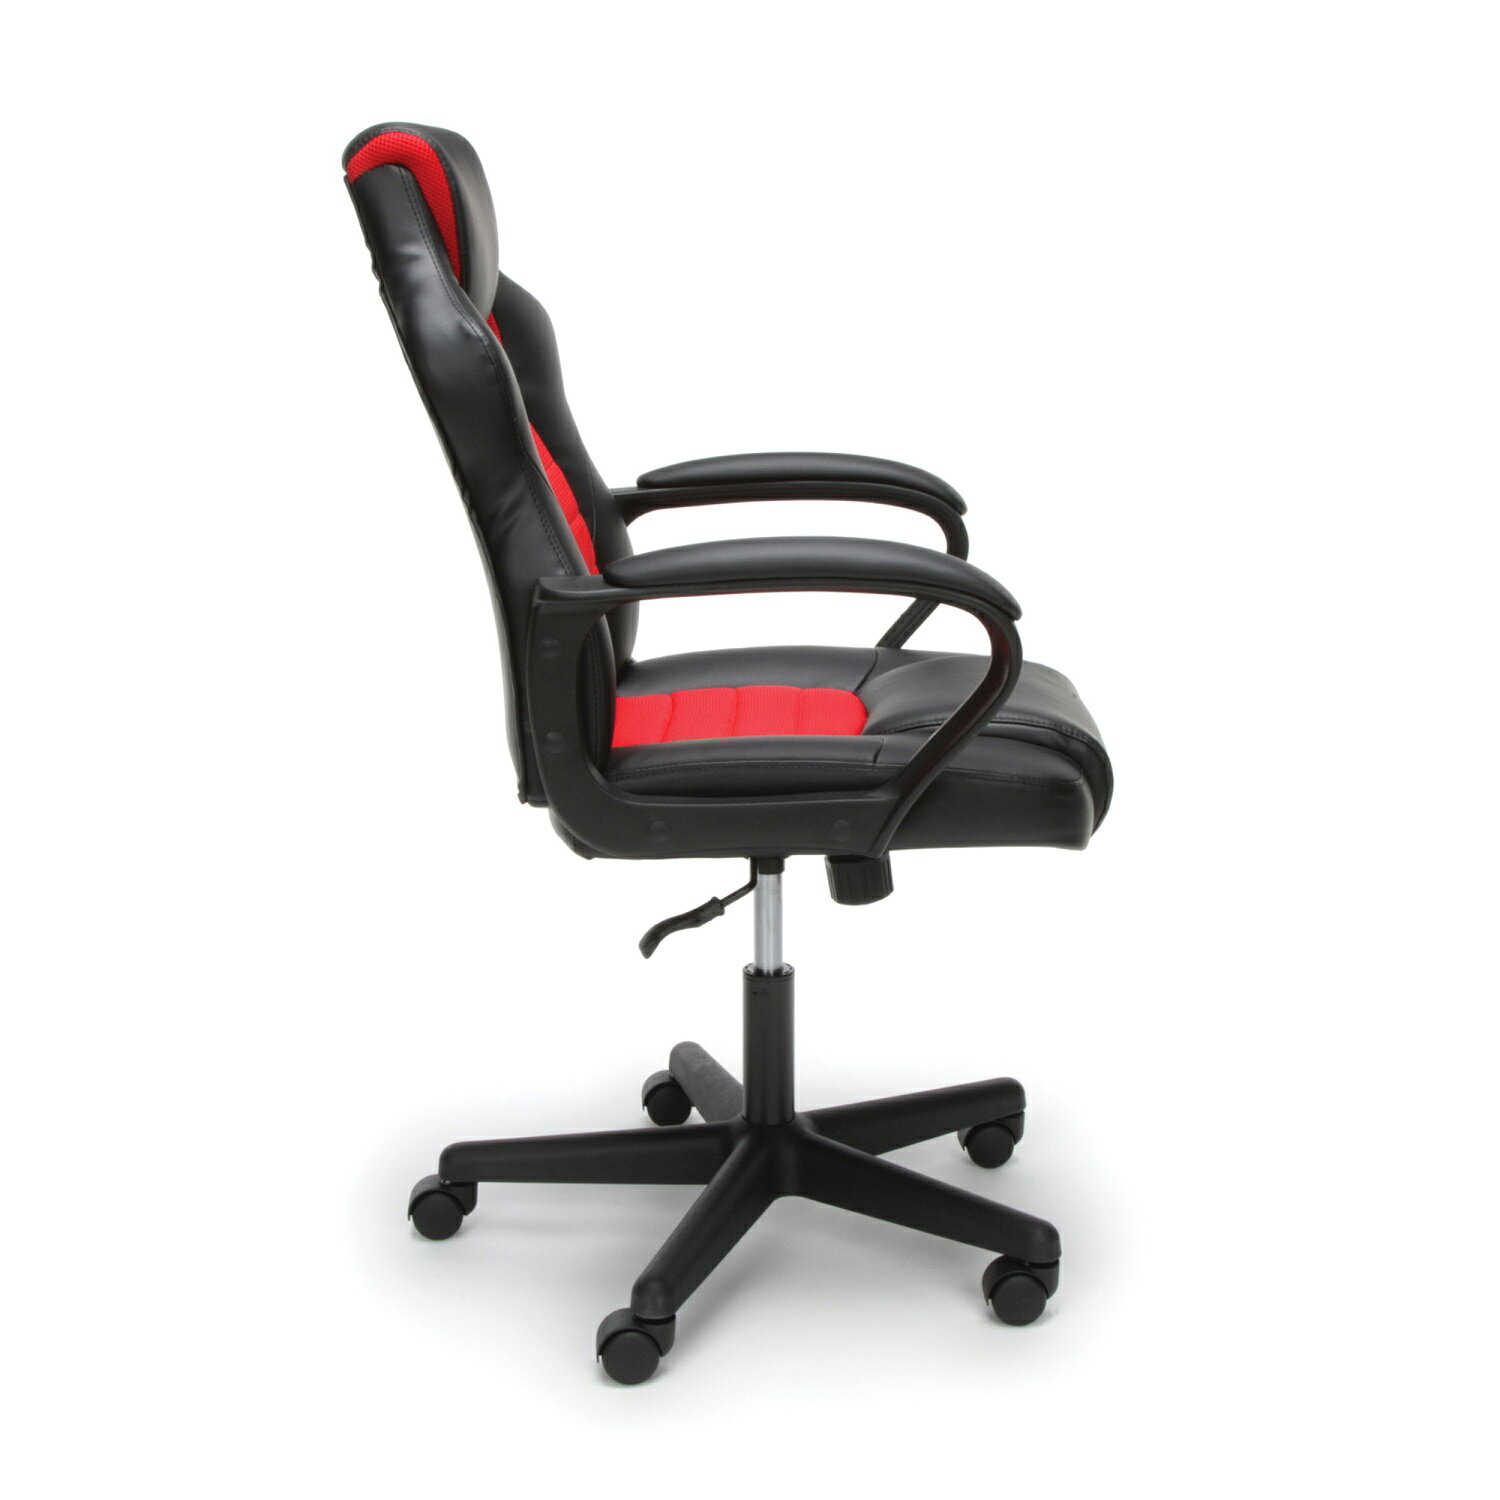 Essentials by OFM ESS-3083 Racing Style Gaming Chair 5